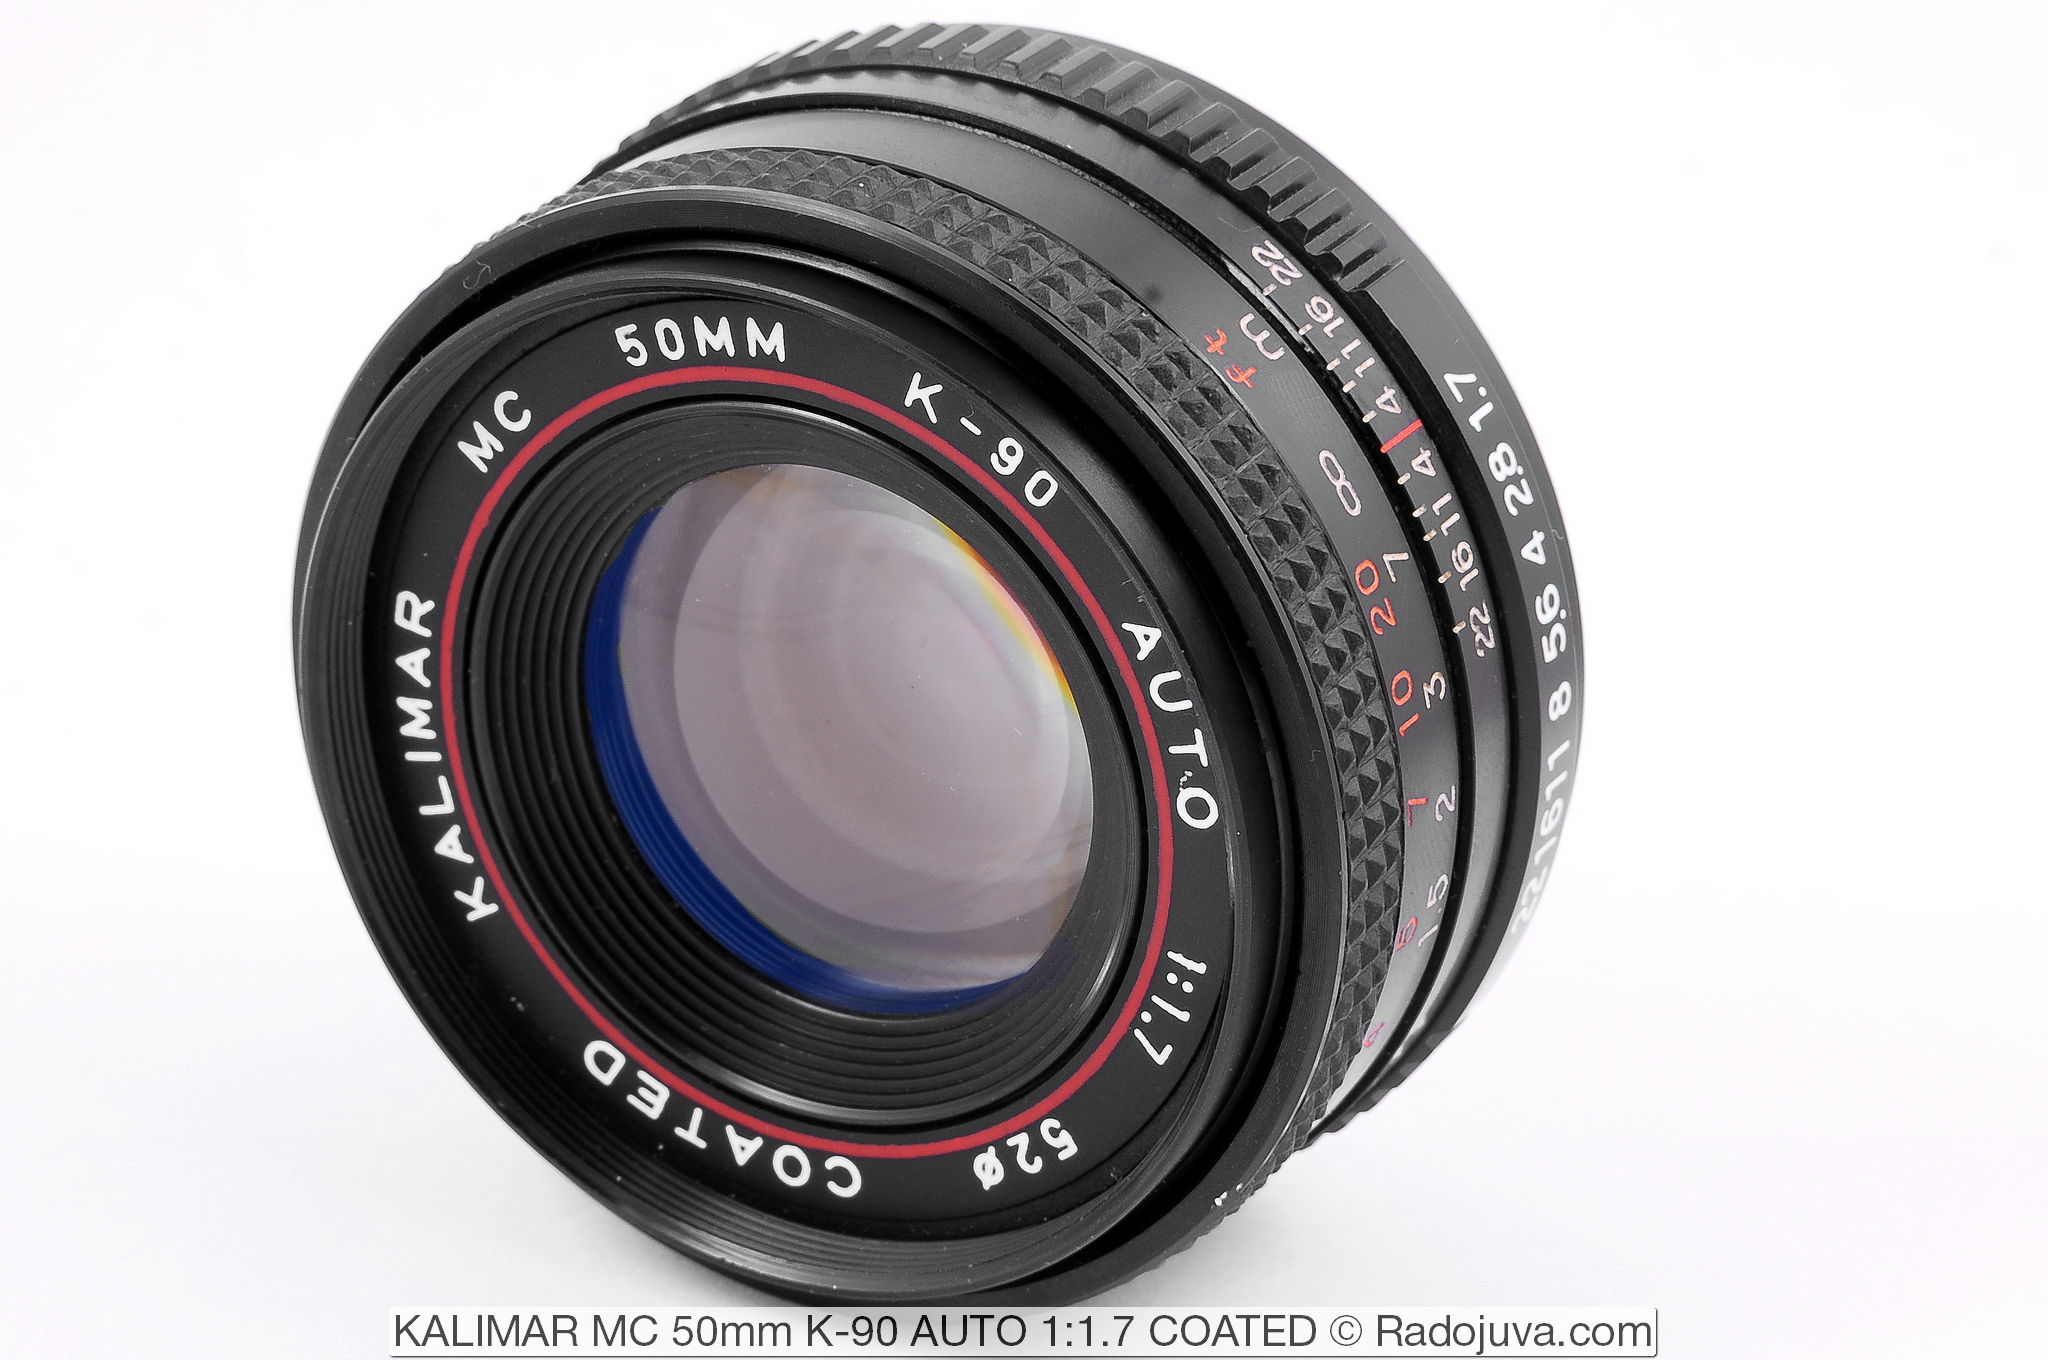 KALIMAR MC 50mm K-90 AUTO 1:1.7 COATED